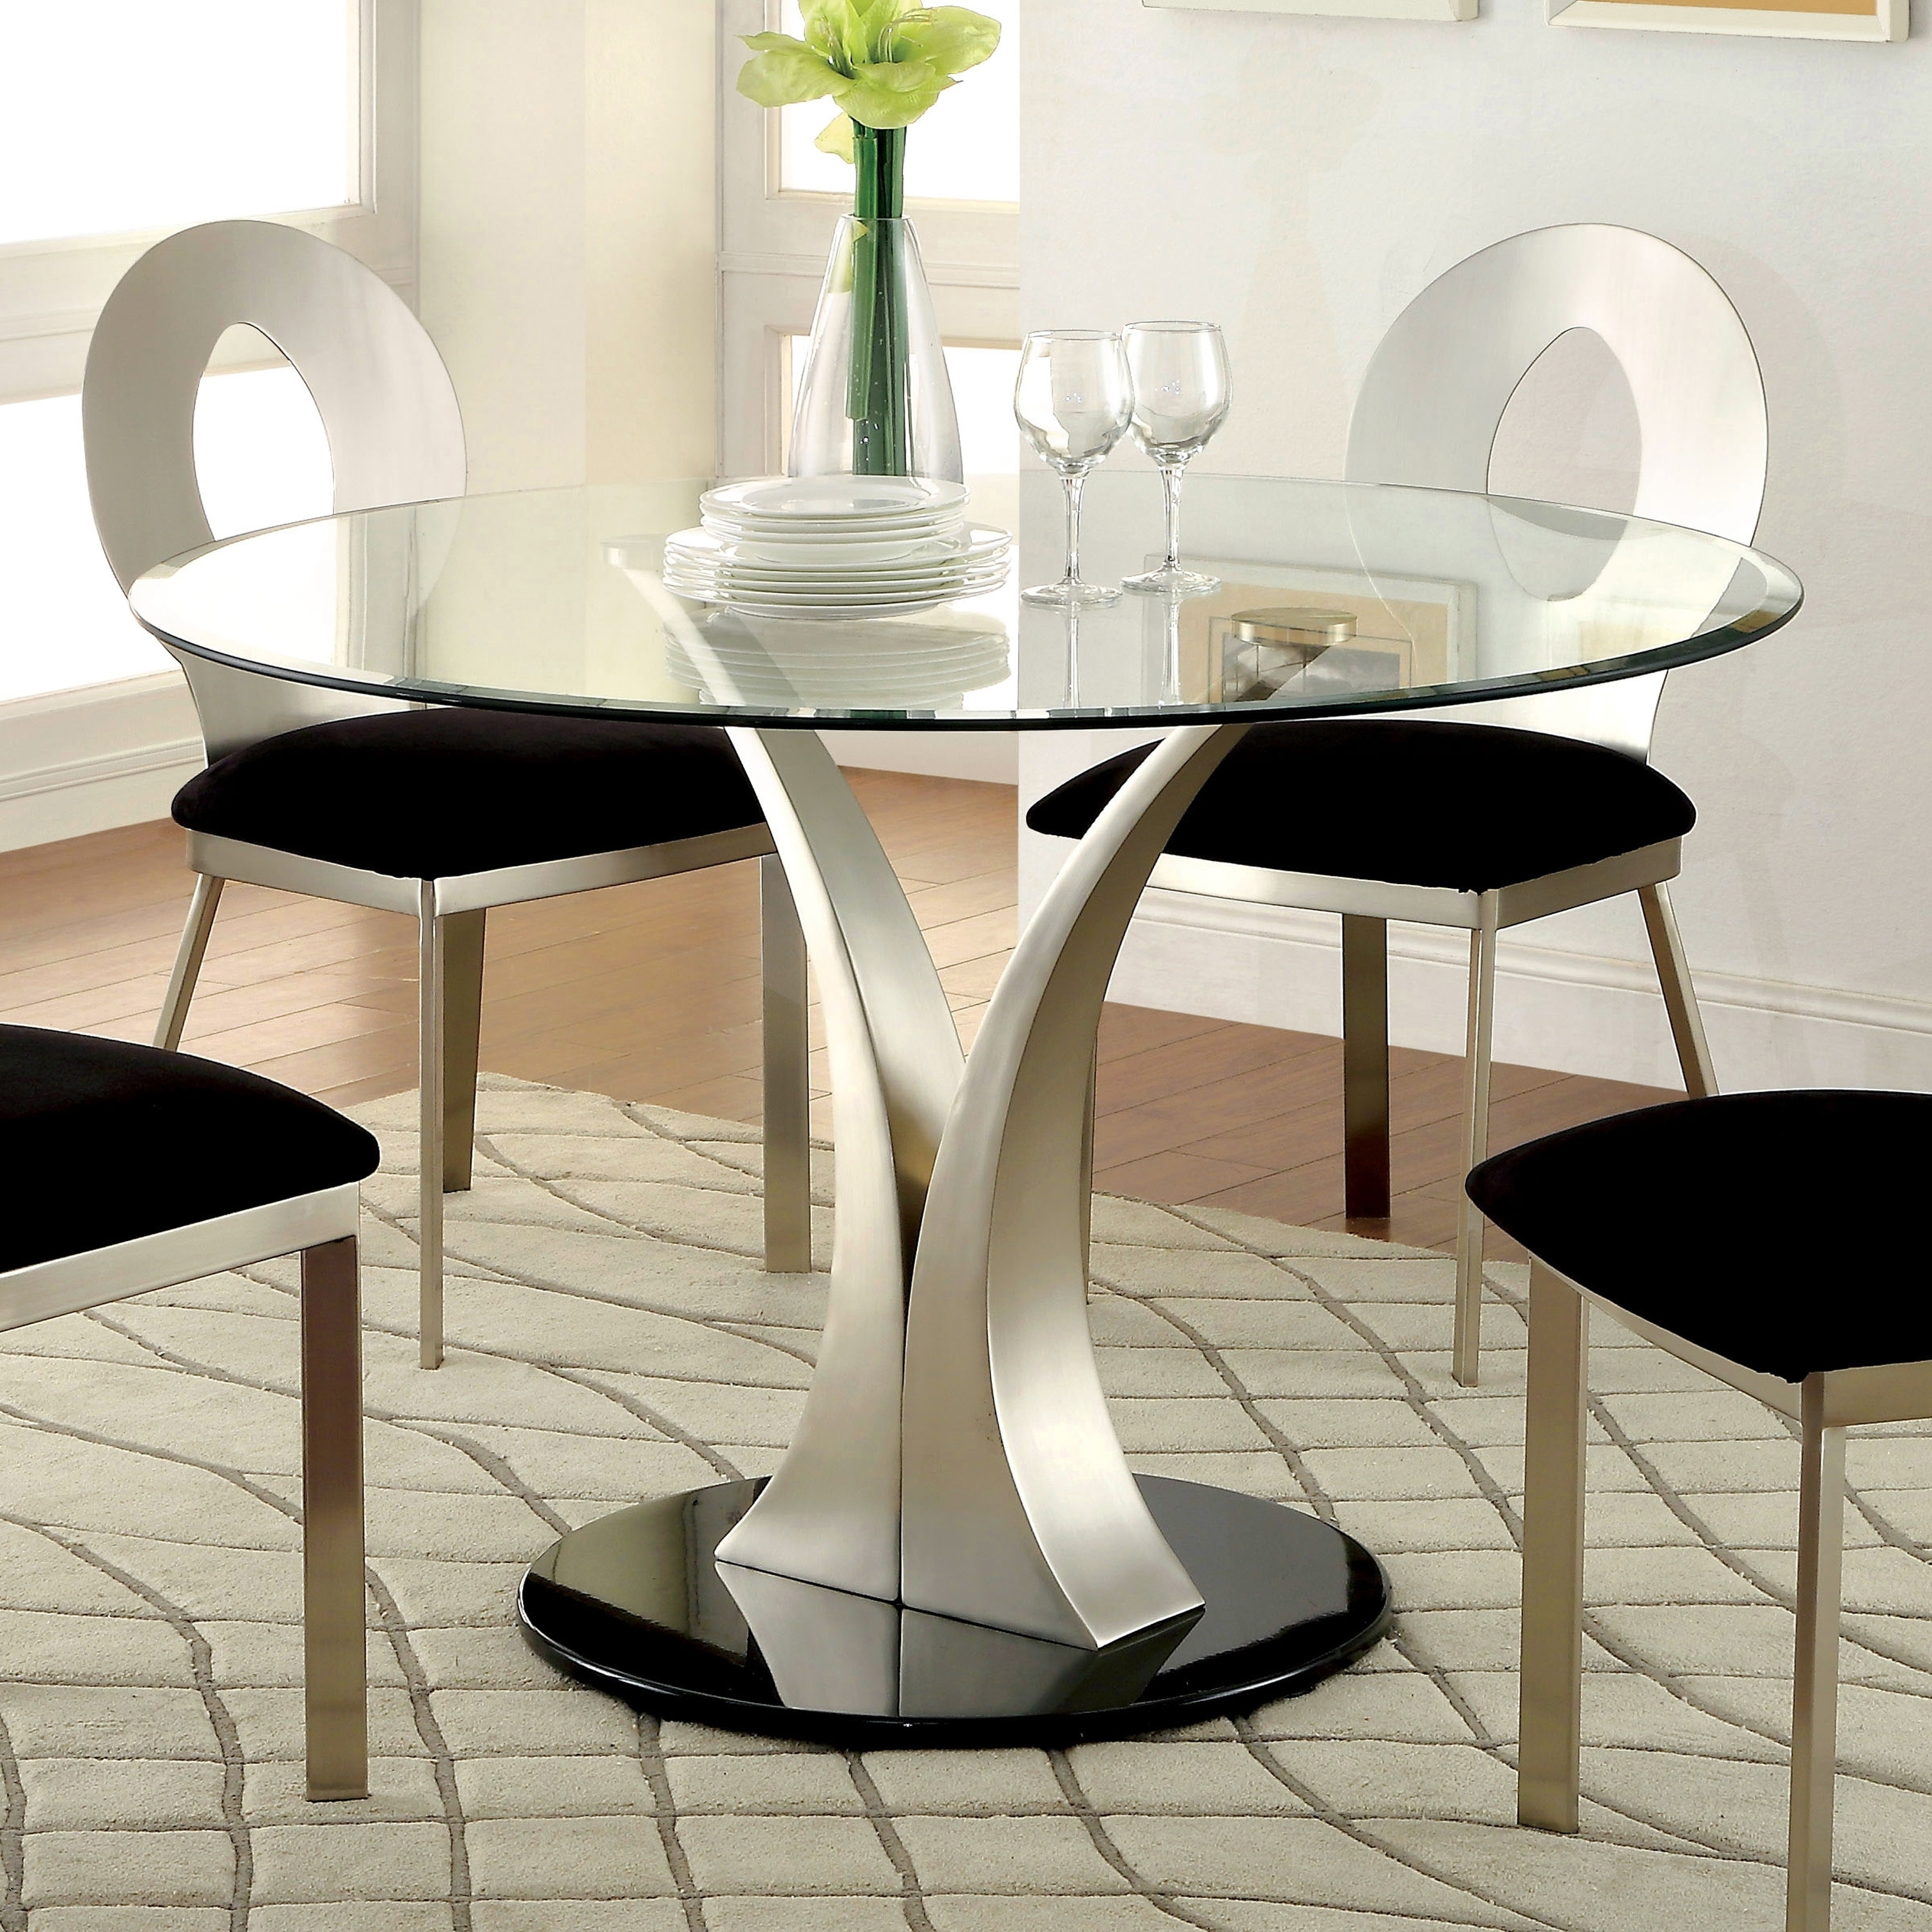 Bon Buy Glass Kitchen U0026 Dining Room Tables Online At Overstock | Our Best Dining  Room U0026 Bar Furniture Deals